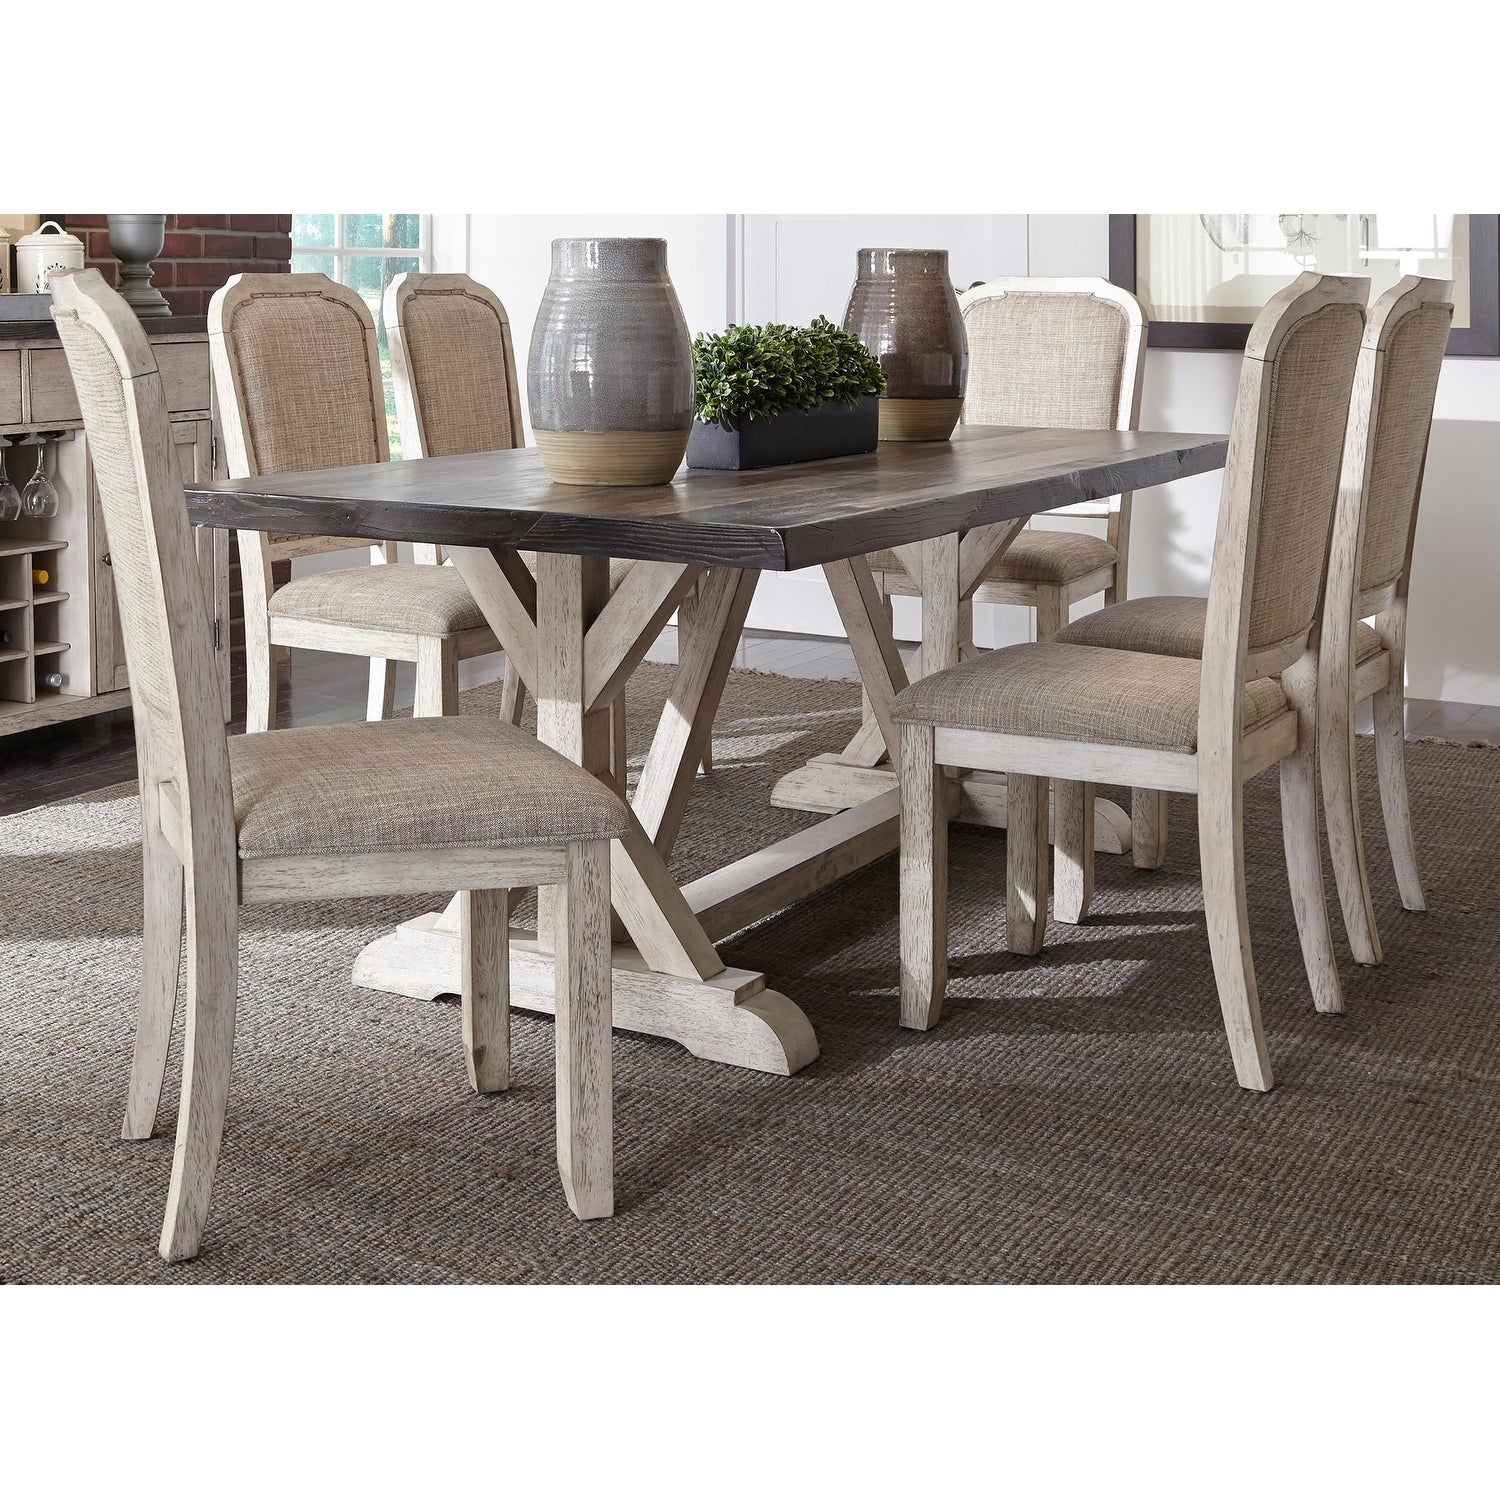 Willowrun Rustic White And Grey 7 Piece Trestle Table Dining Set Free Shipping Today 18620102